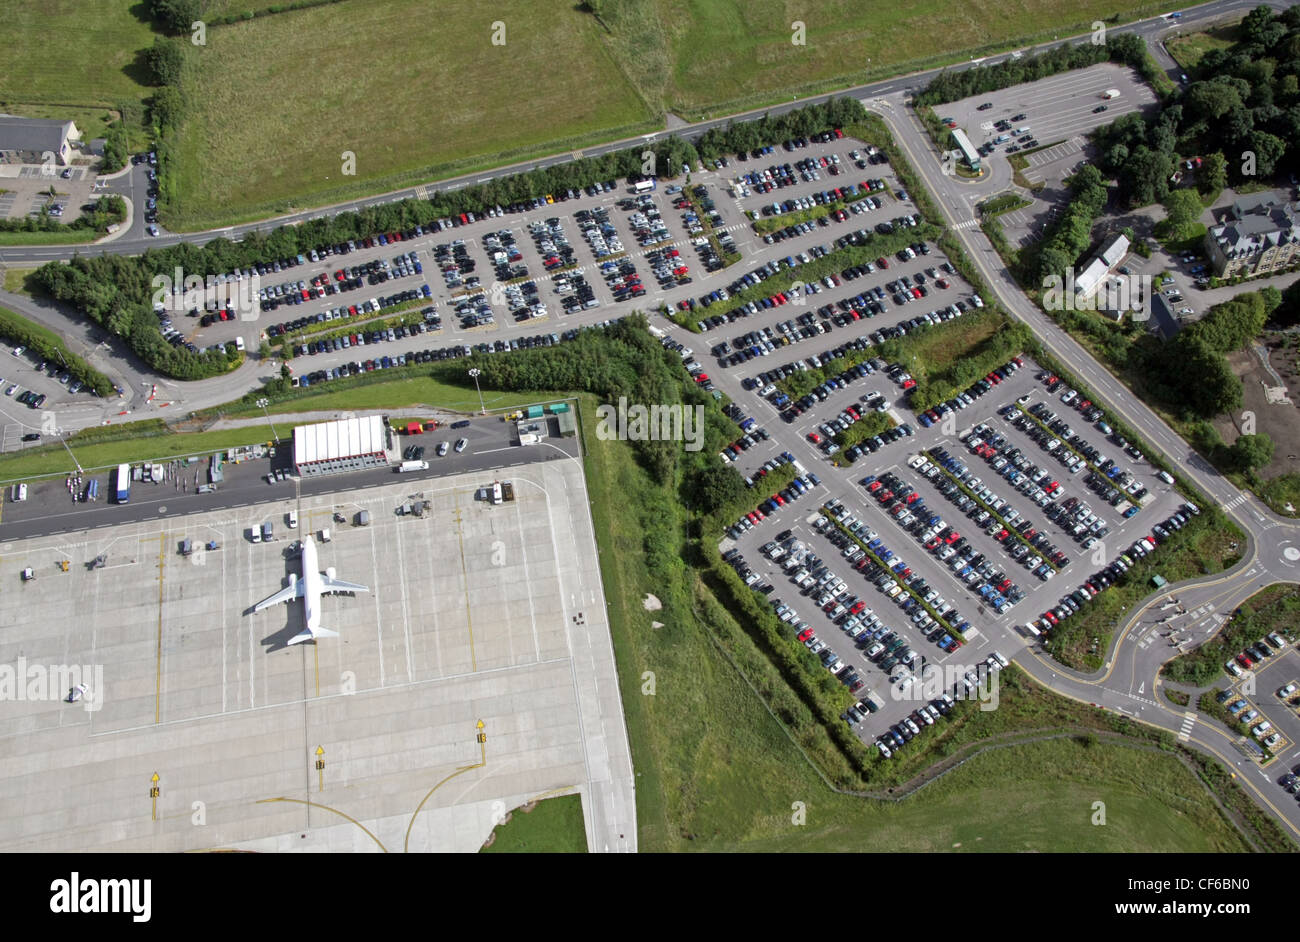 Car parking at an airport stock photos car parking at an airport aerial view of airport car parking stock image kristyandbryce Image collections